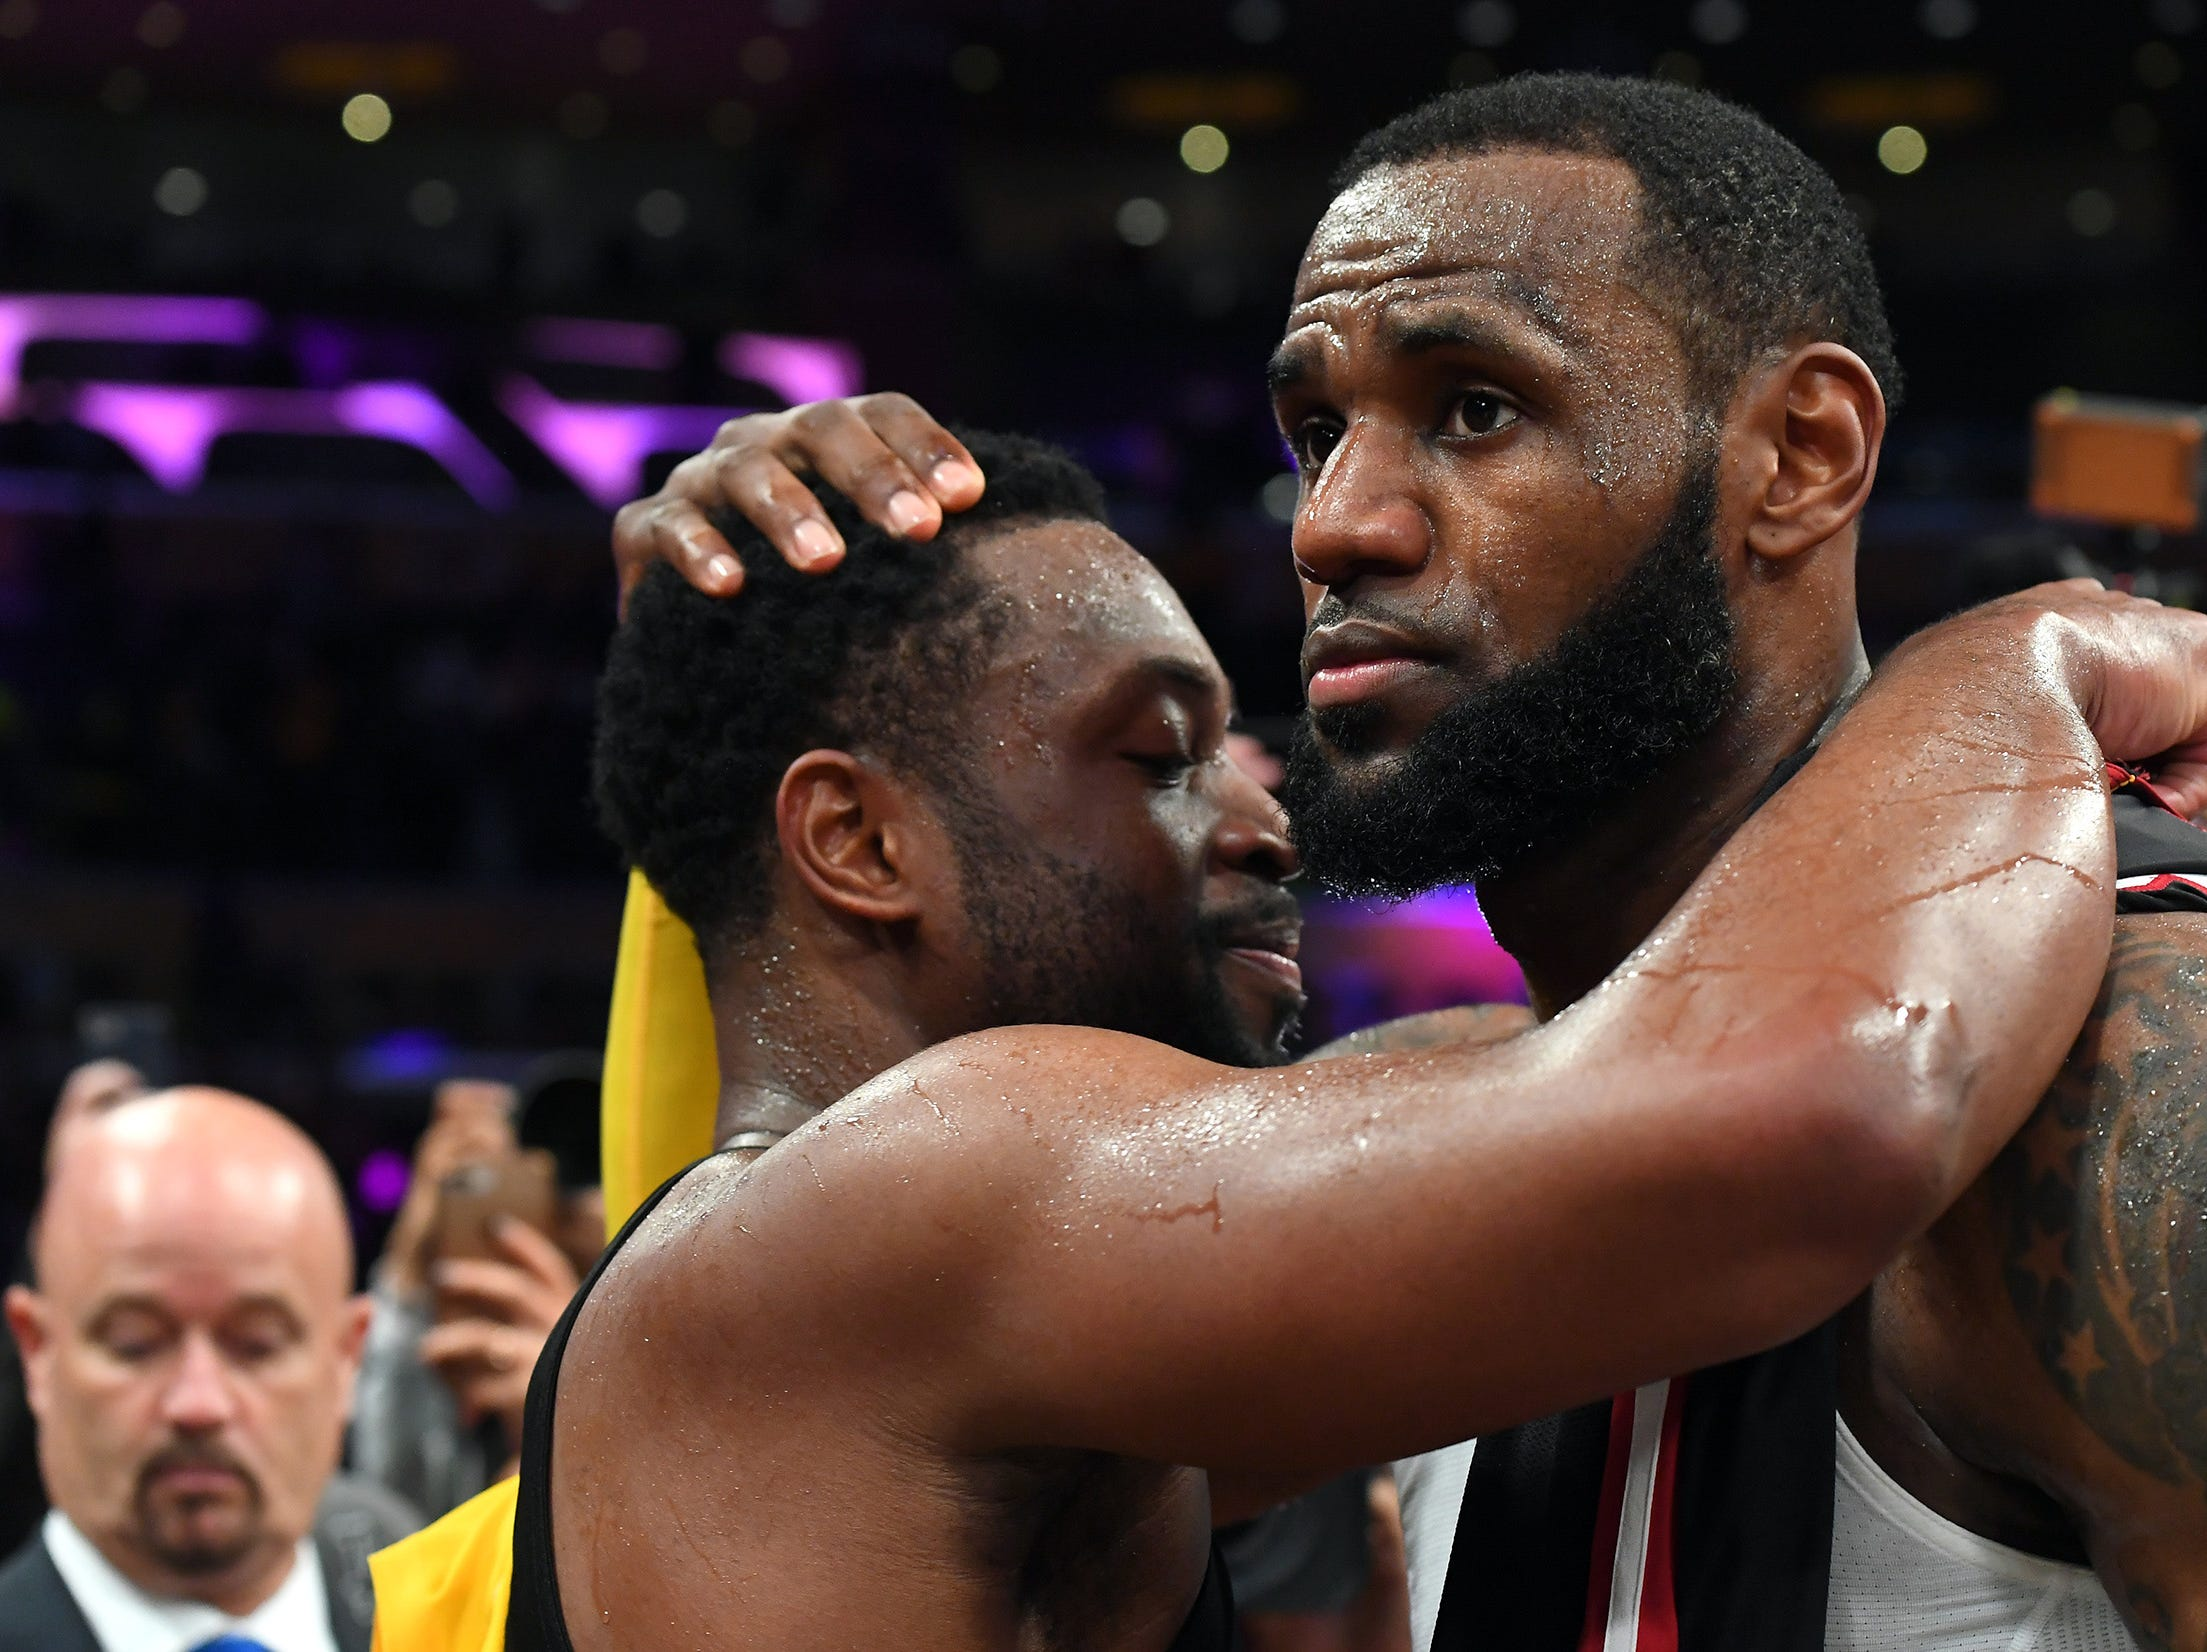 Dec. 10: Miami Heat guard Dwyane Wade (3) and Los Angeles Lakers forward LeBron James (23) embrace after the game at Staples Center.